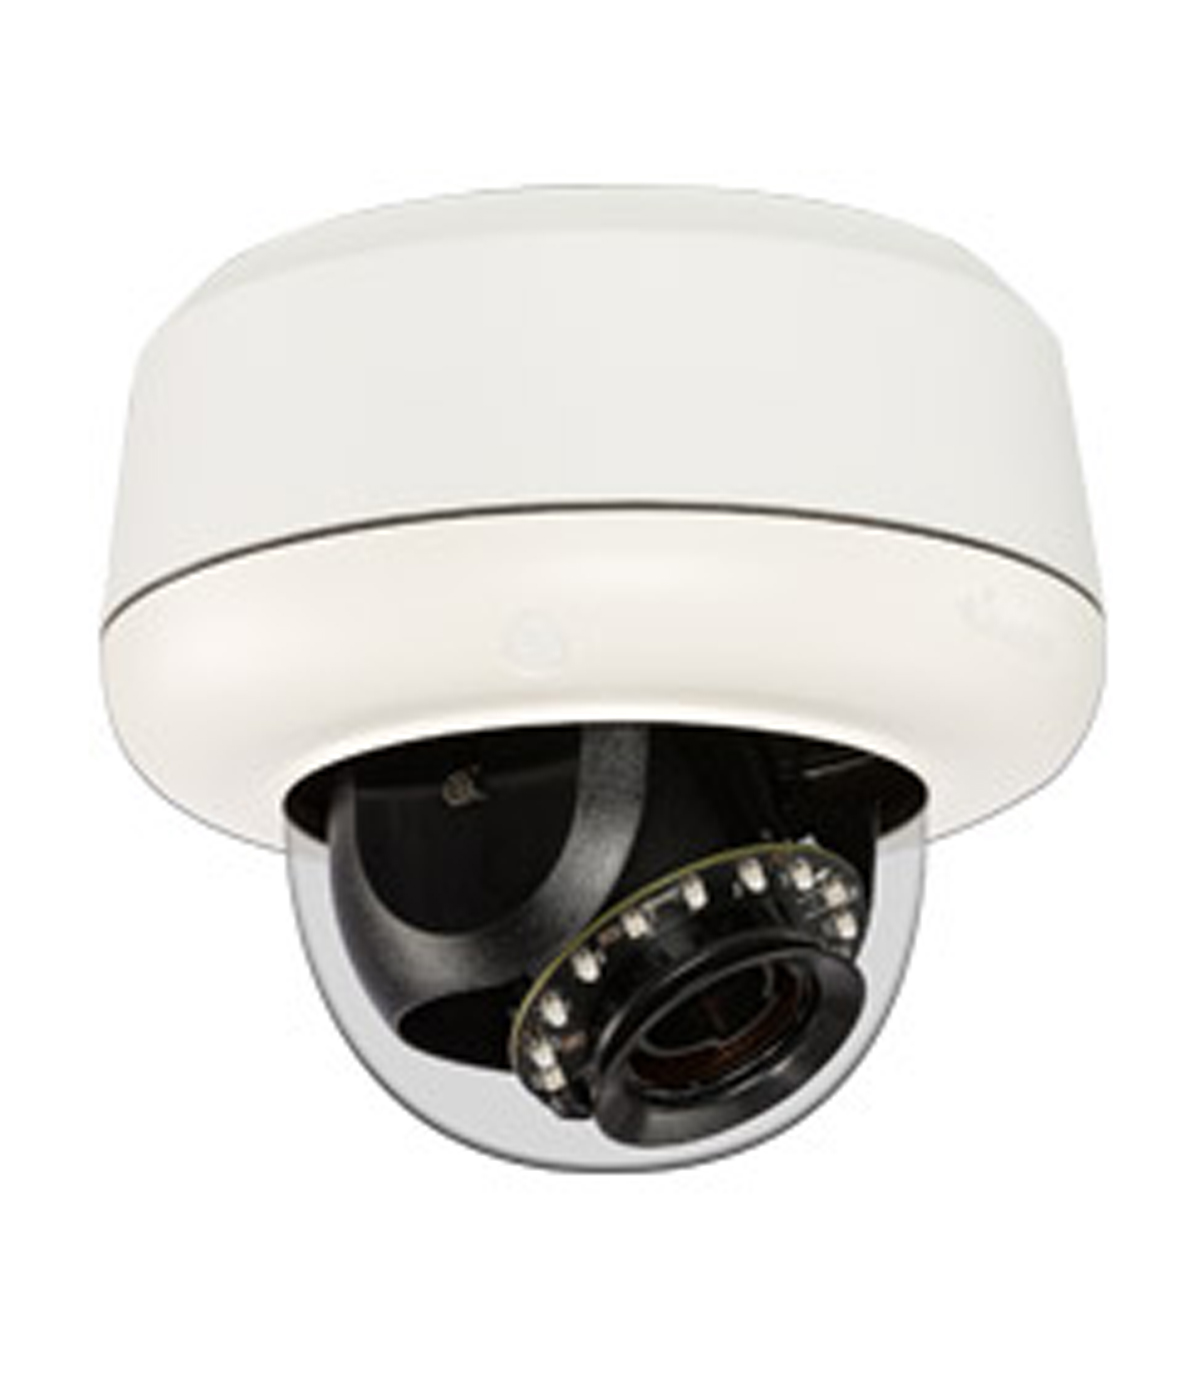 cctv_system_security_system_singapore_product_exacqvision_dome_camera